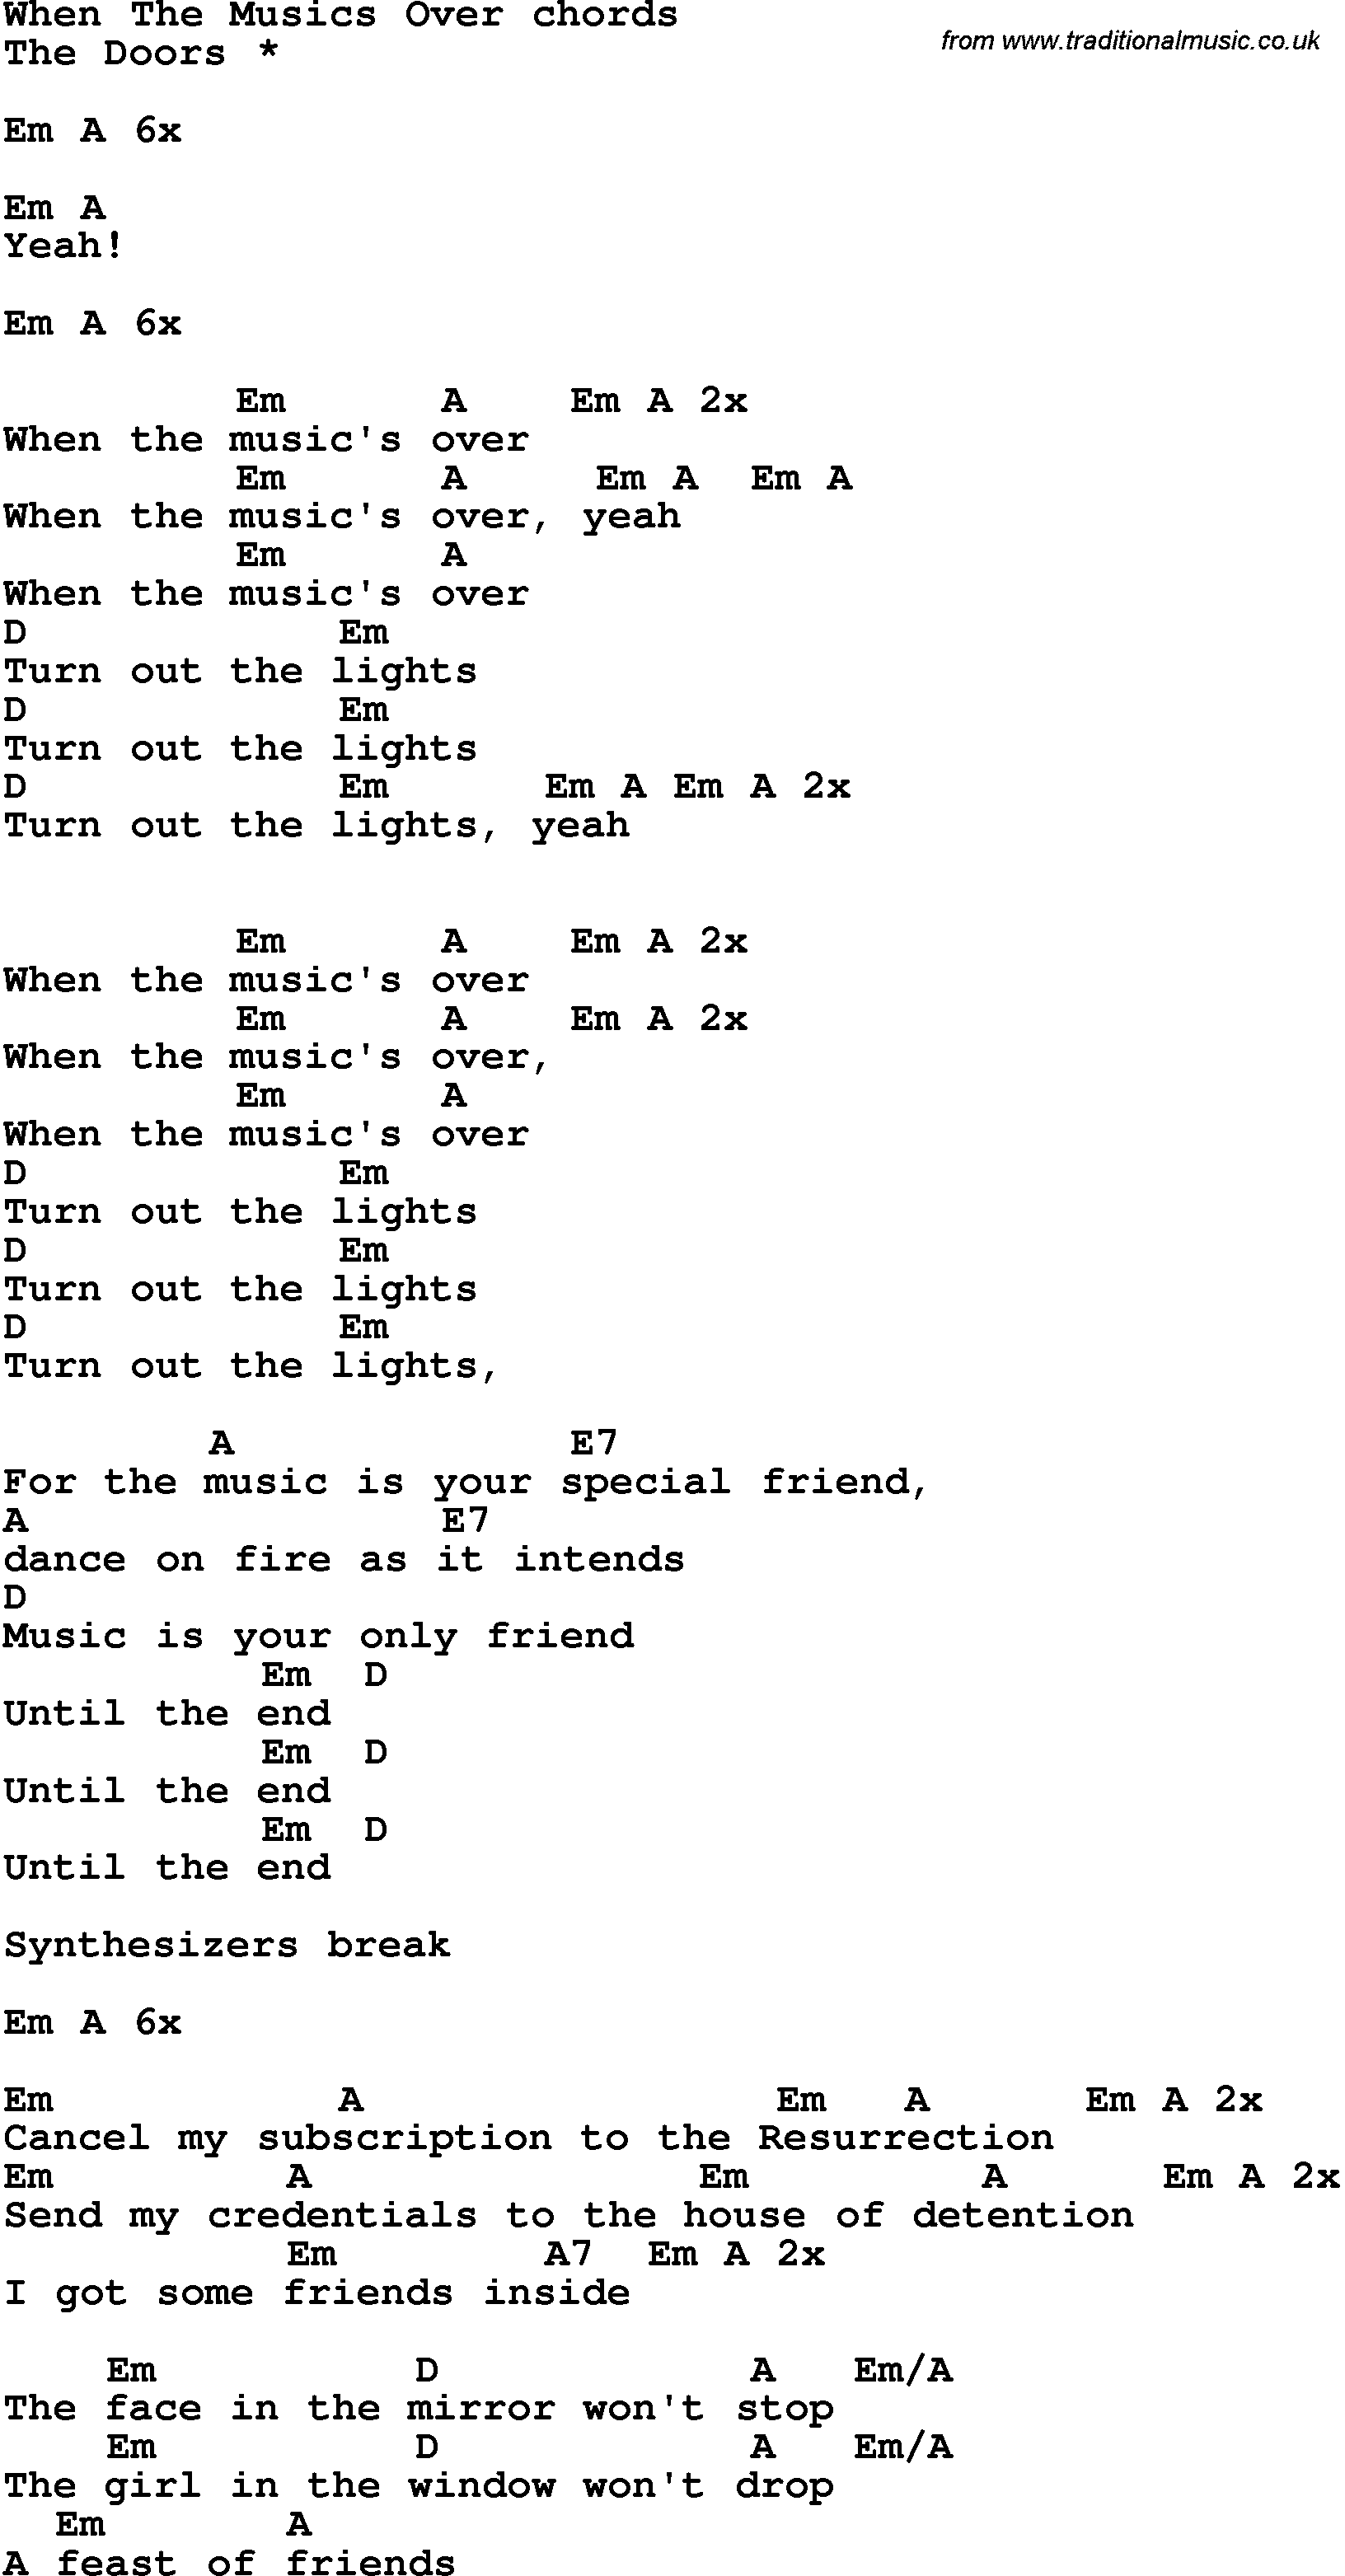 Song Lyrics With Guitar Chords For When The Musics Over